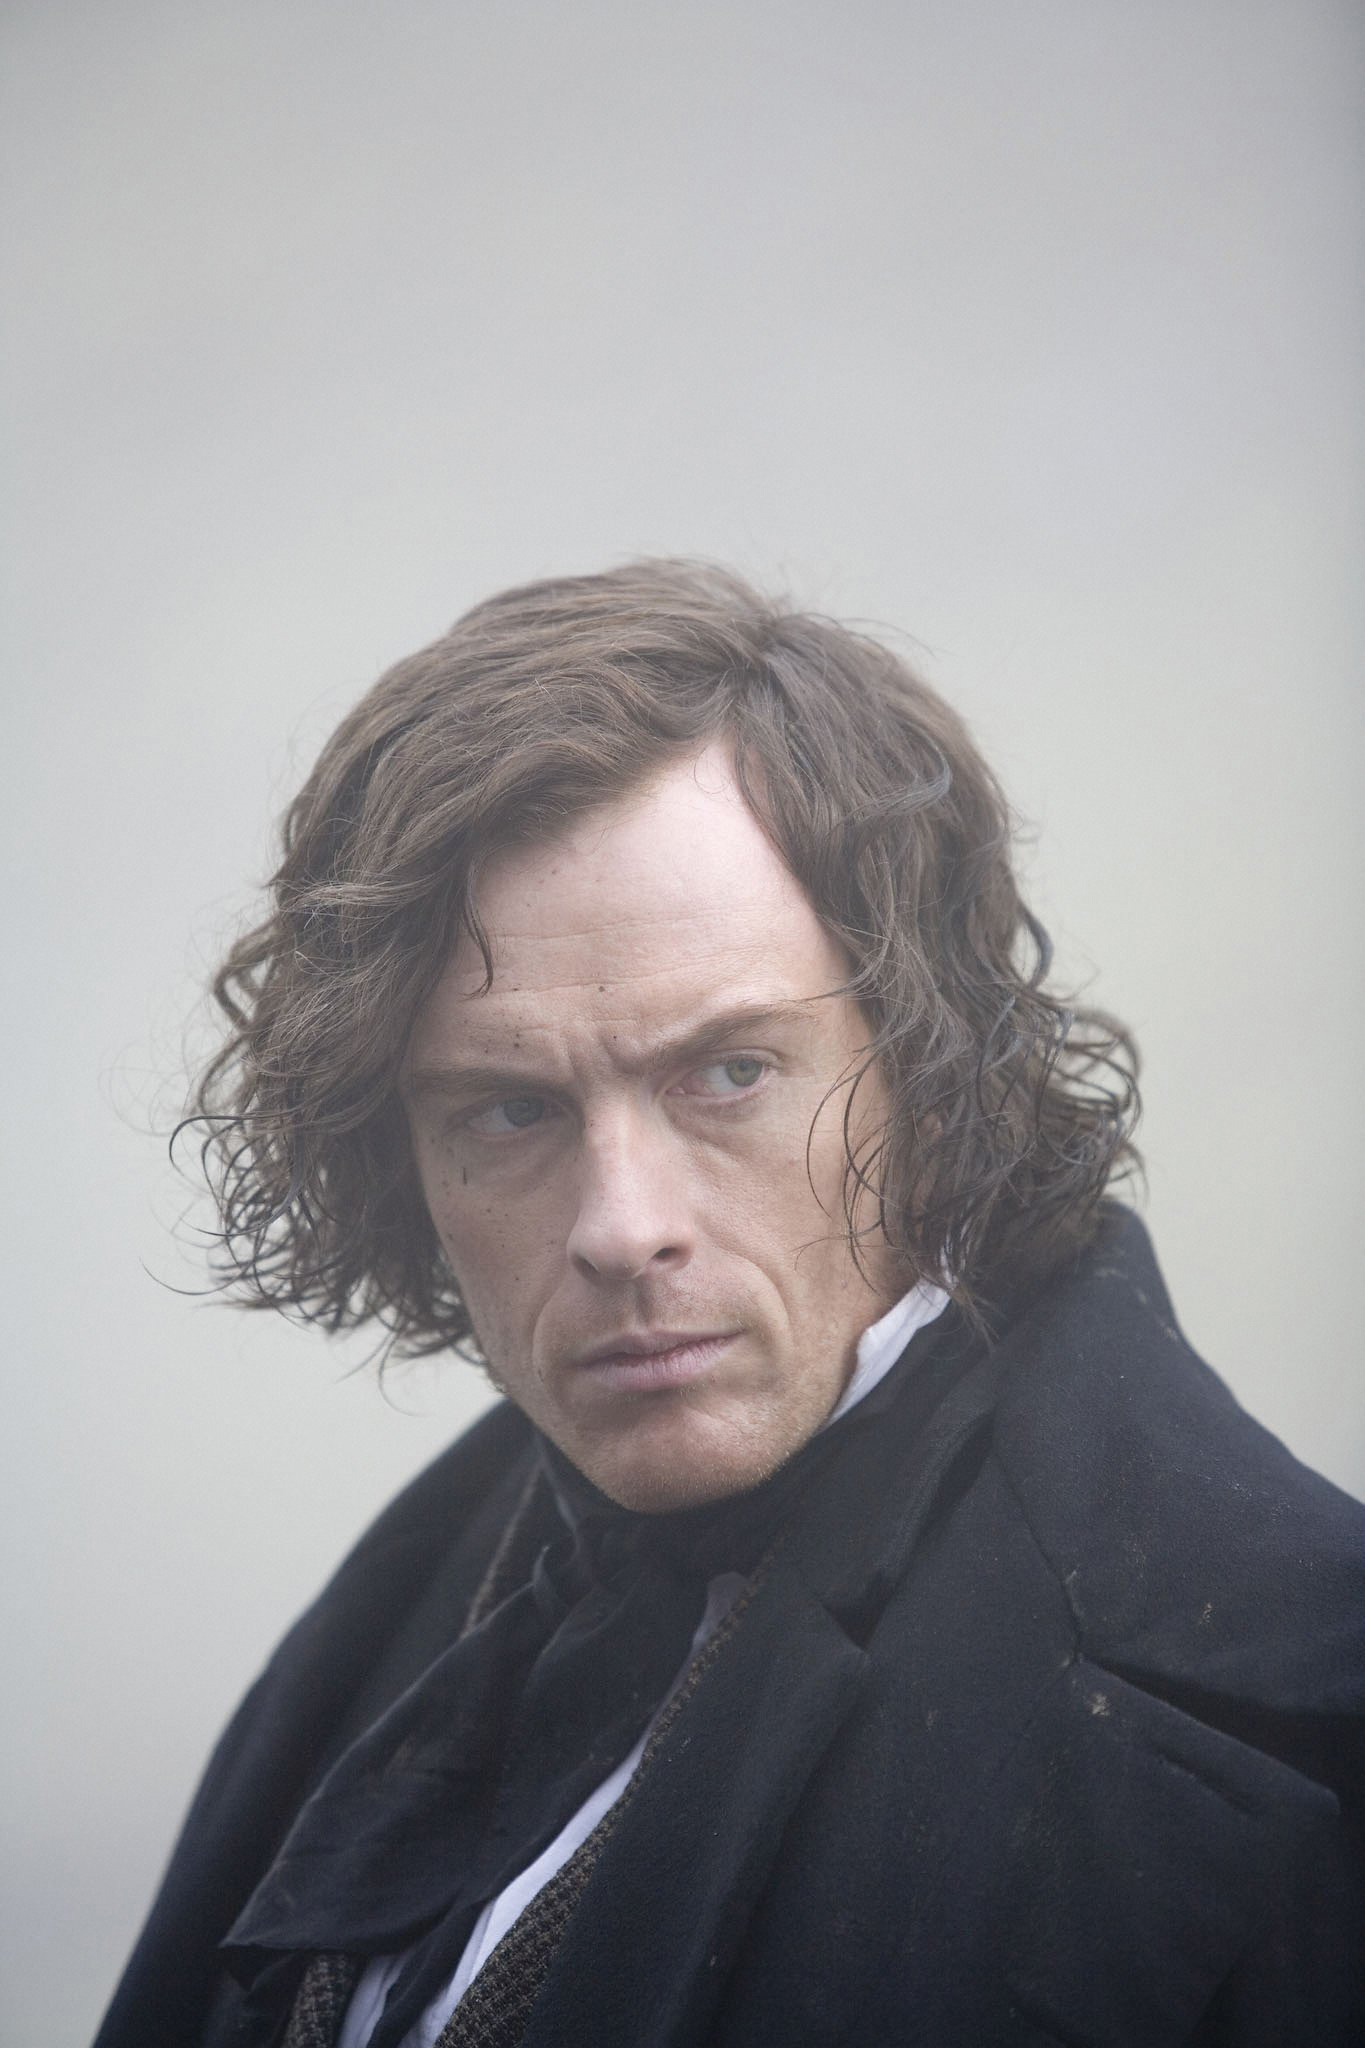 toby stephens giftoby stephens height, toby stephens gif, toby stephens twitter, toby stephens кинопоиск, toby stephens rochester, toby stephens photoshoot, toby stephens brother, toby stephens men's health, toby stephens wiki, toby stephens 2017, toby stephens michael fassbender, toby stephens - twelfth night, toby stephens rupert penry-jones, toby stephens bond, toby stephens it's hot, toby stephens robin hood, toby stephens actor, toby stephens tattoo, toby stephens theatre, toby stephens height weight